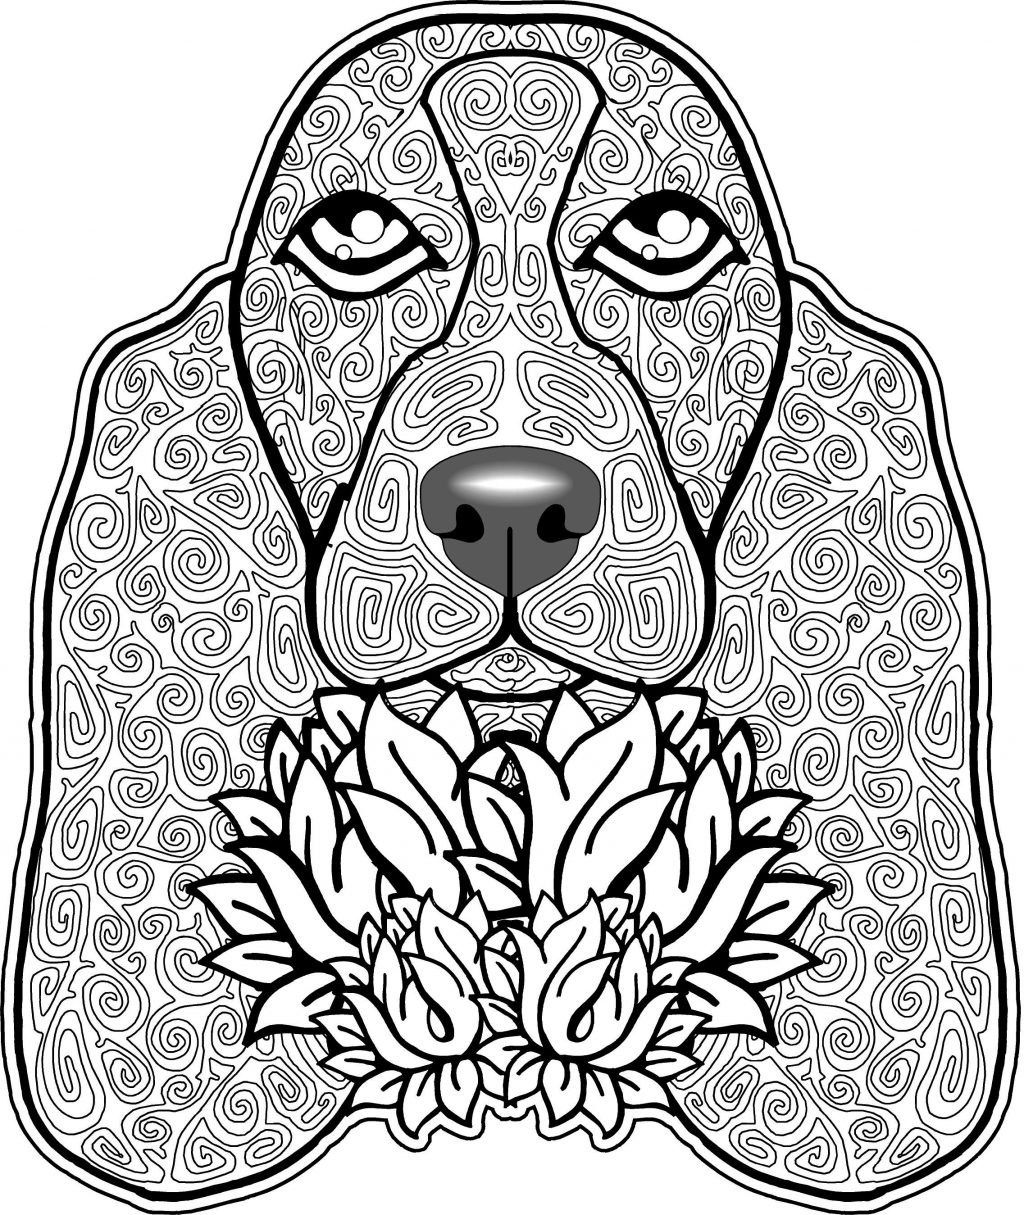 Dog Coloring Pages For Adults Dog Coloring Pages Letter D Is For Book Colouring Adults Hard Cute Entitlementtrap Com Dog Coloring Page Dog Coloring Book Animal Coloring Pages